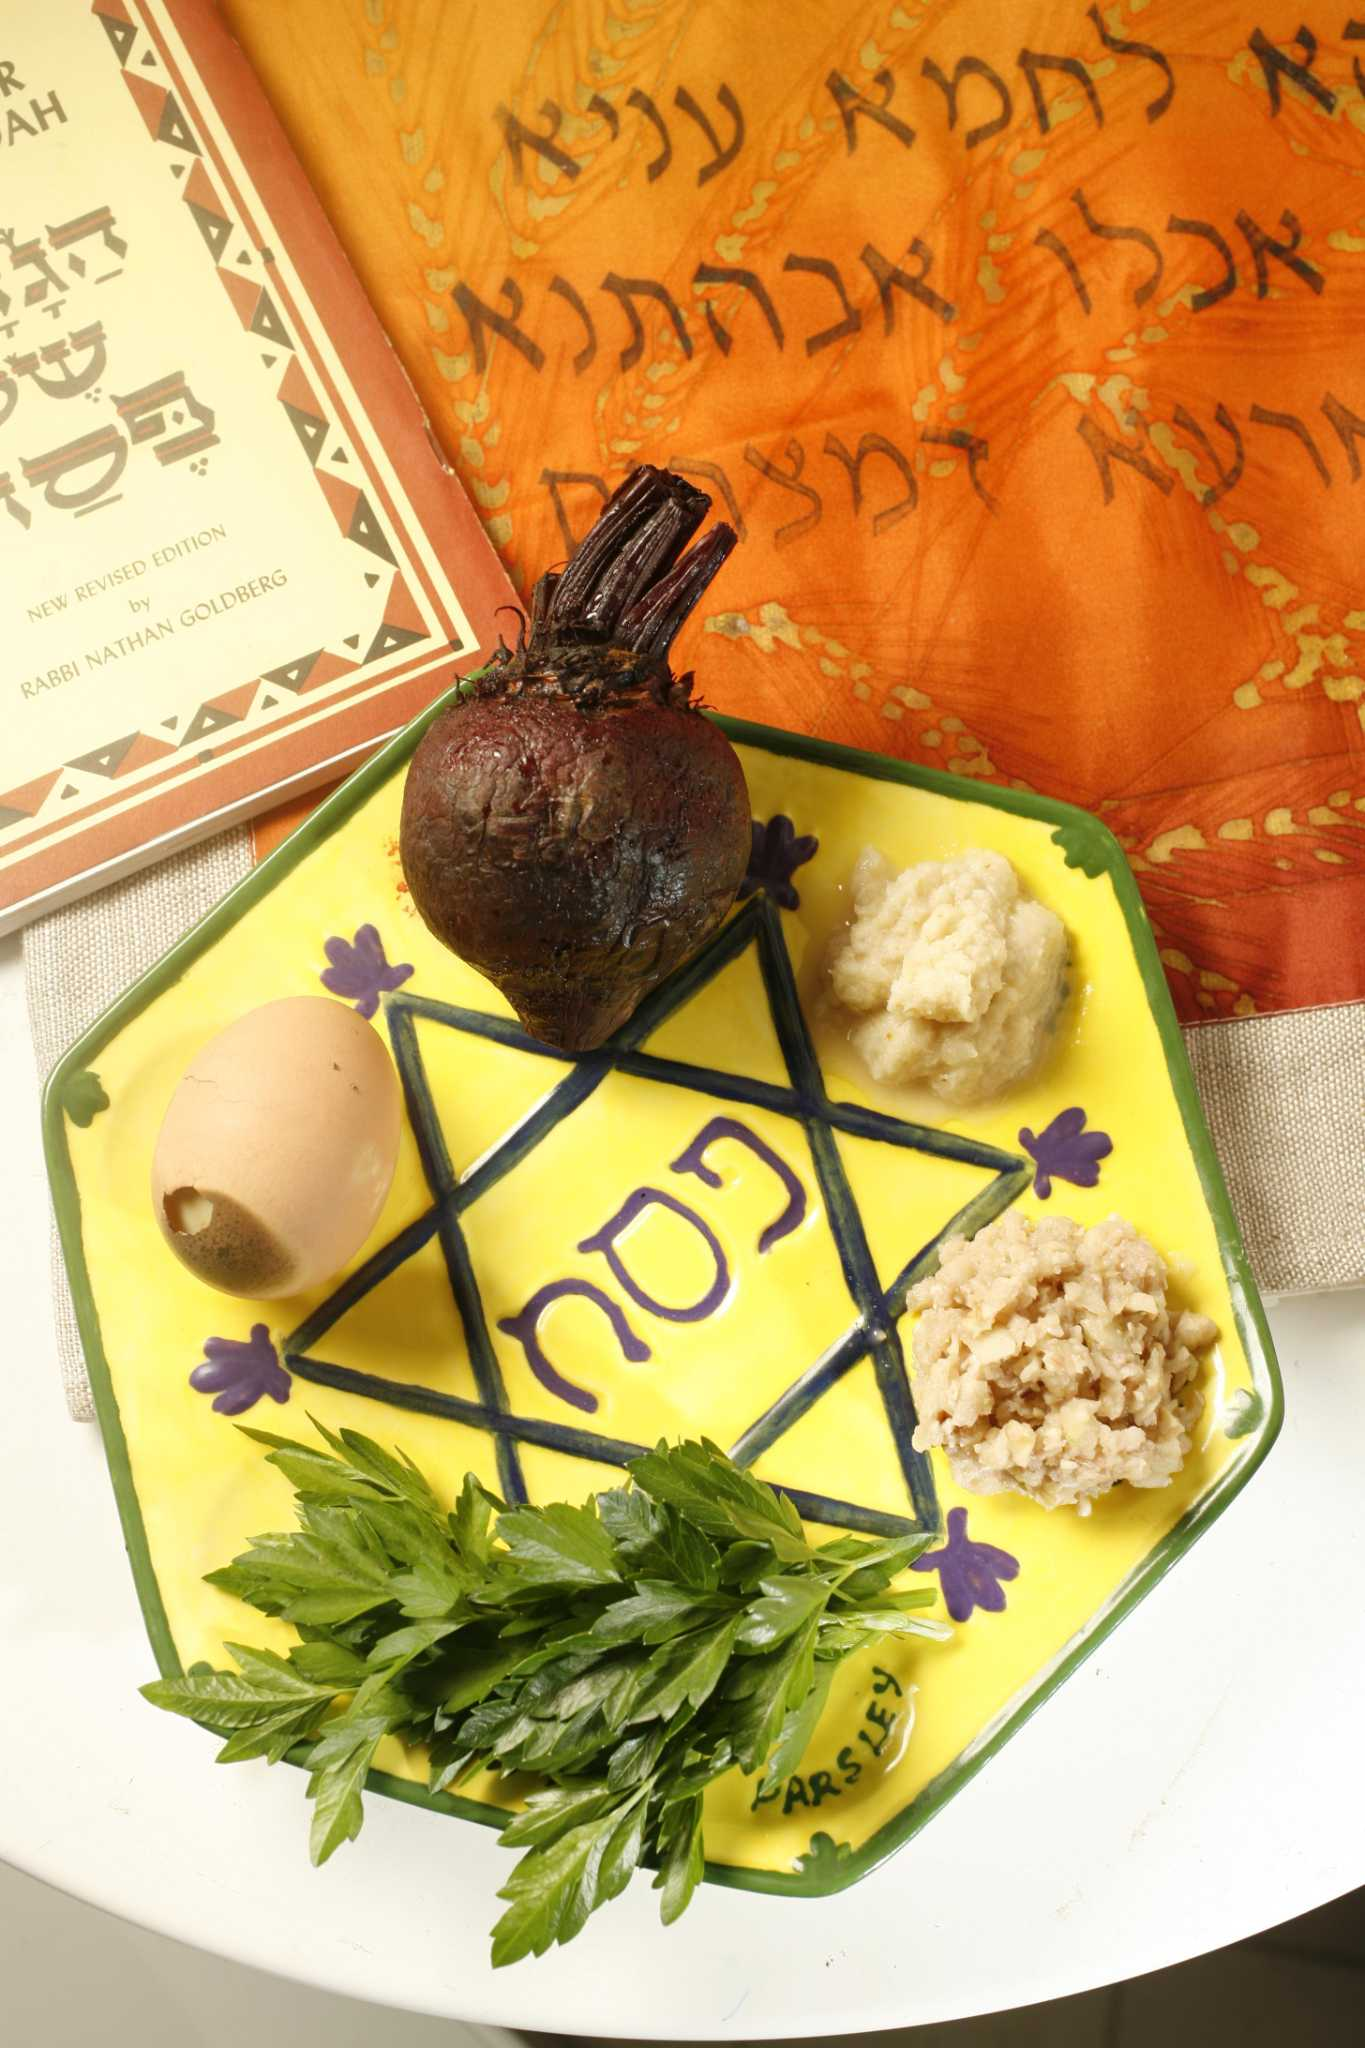 Recipes for vegetarians abound for Passover Seder meals